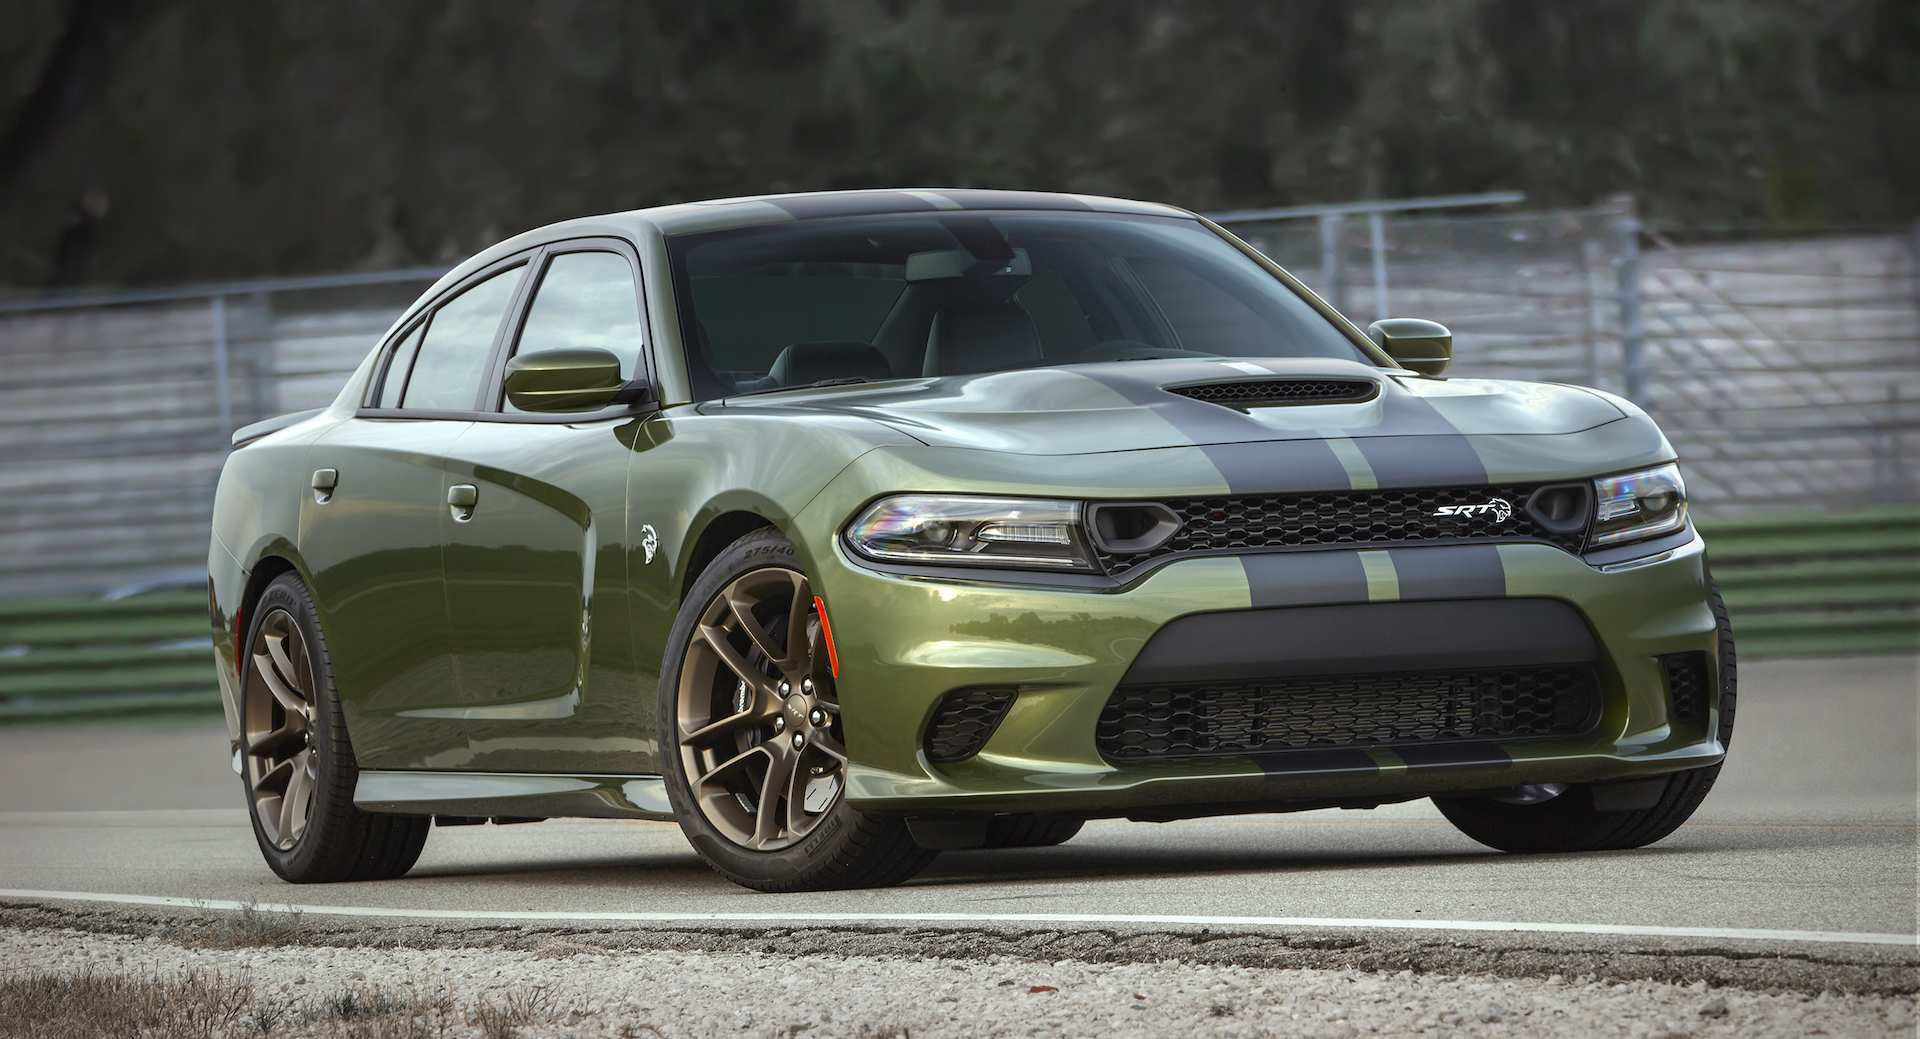 35 Concept of 2020 Dodge Charger Update Model by 2020 Dodge Charger Update